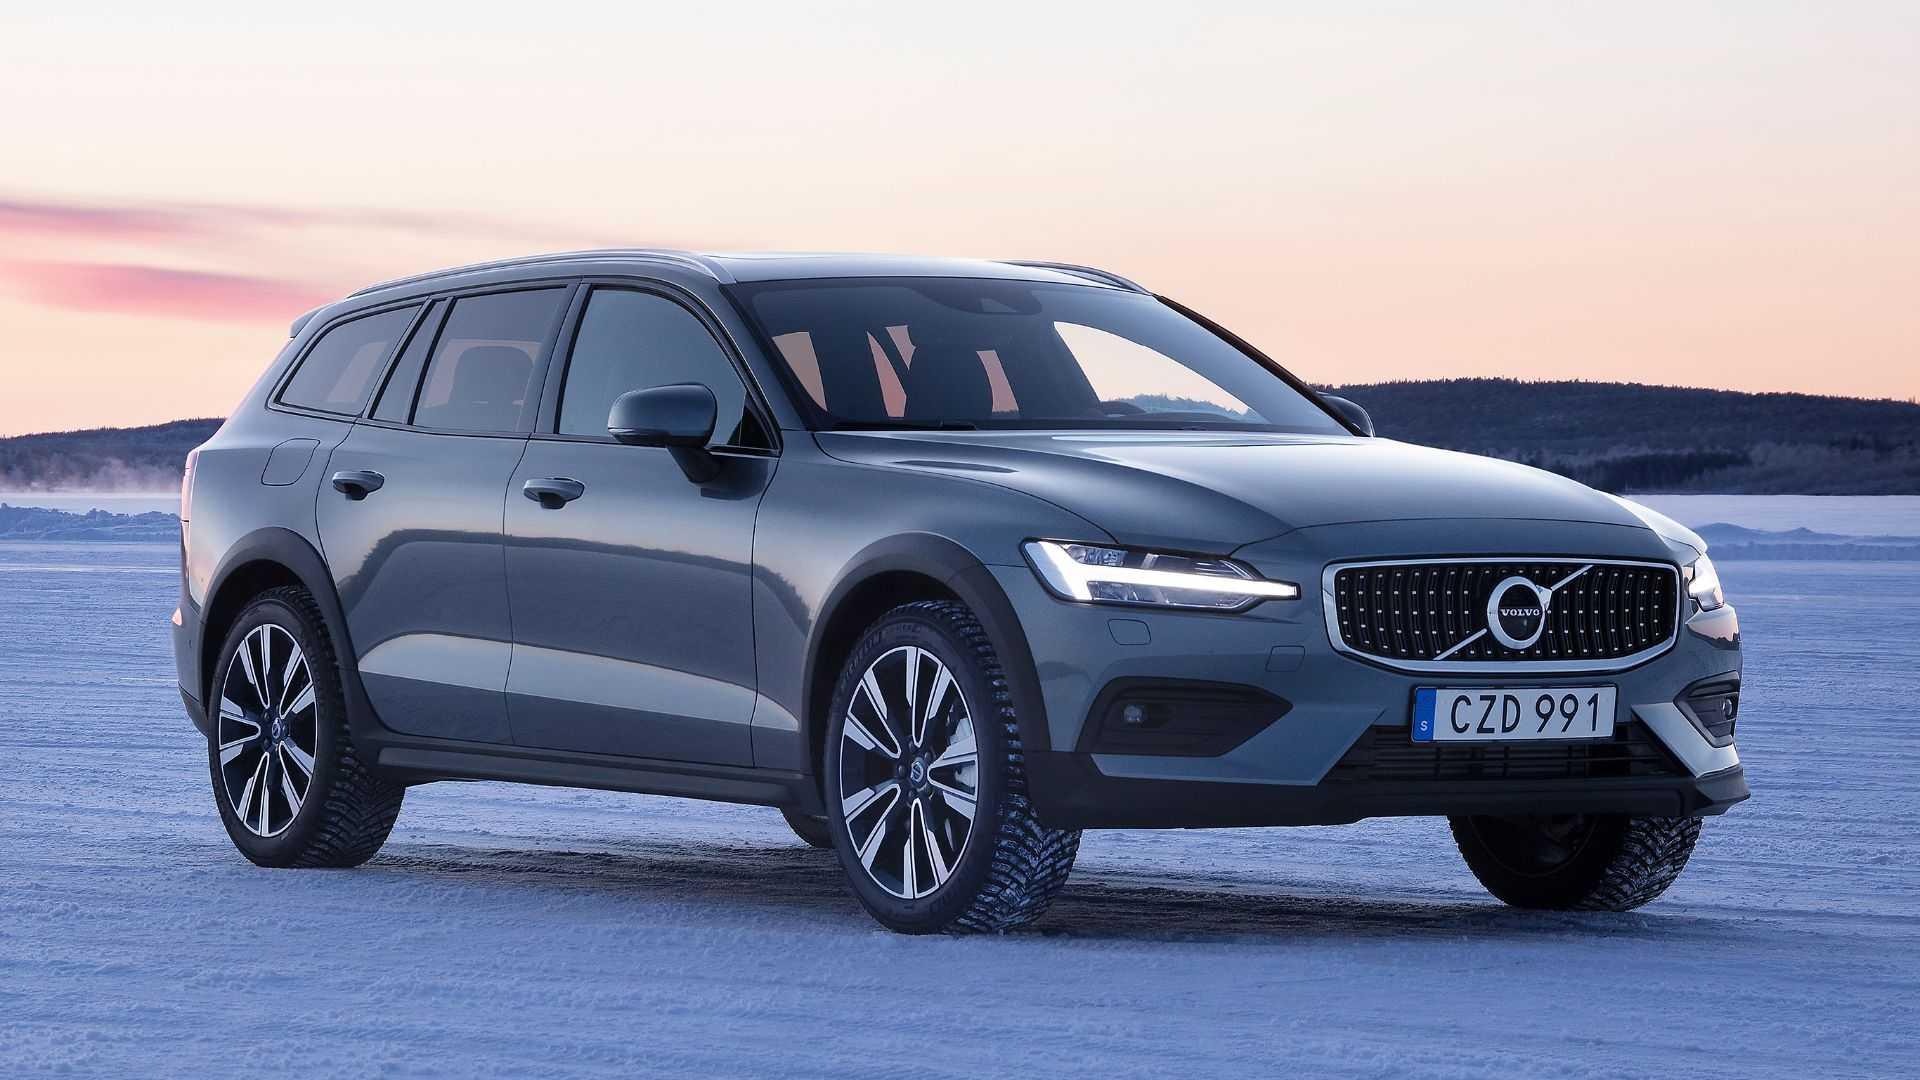 40 All New Volvo Cross Country 2020 Picture by Volvo Cross Country 2020